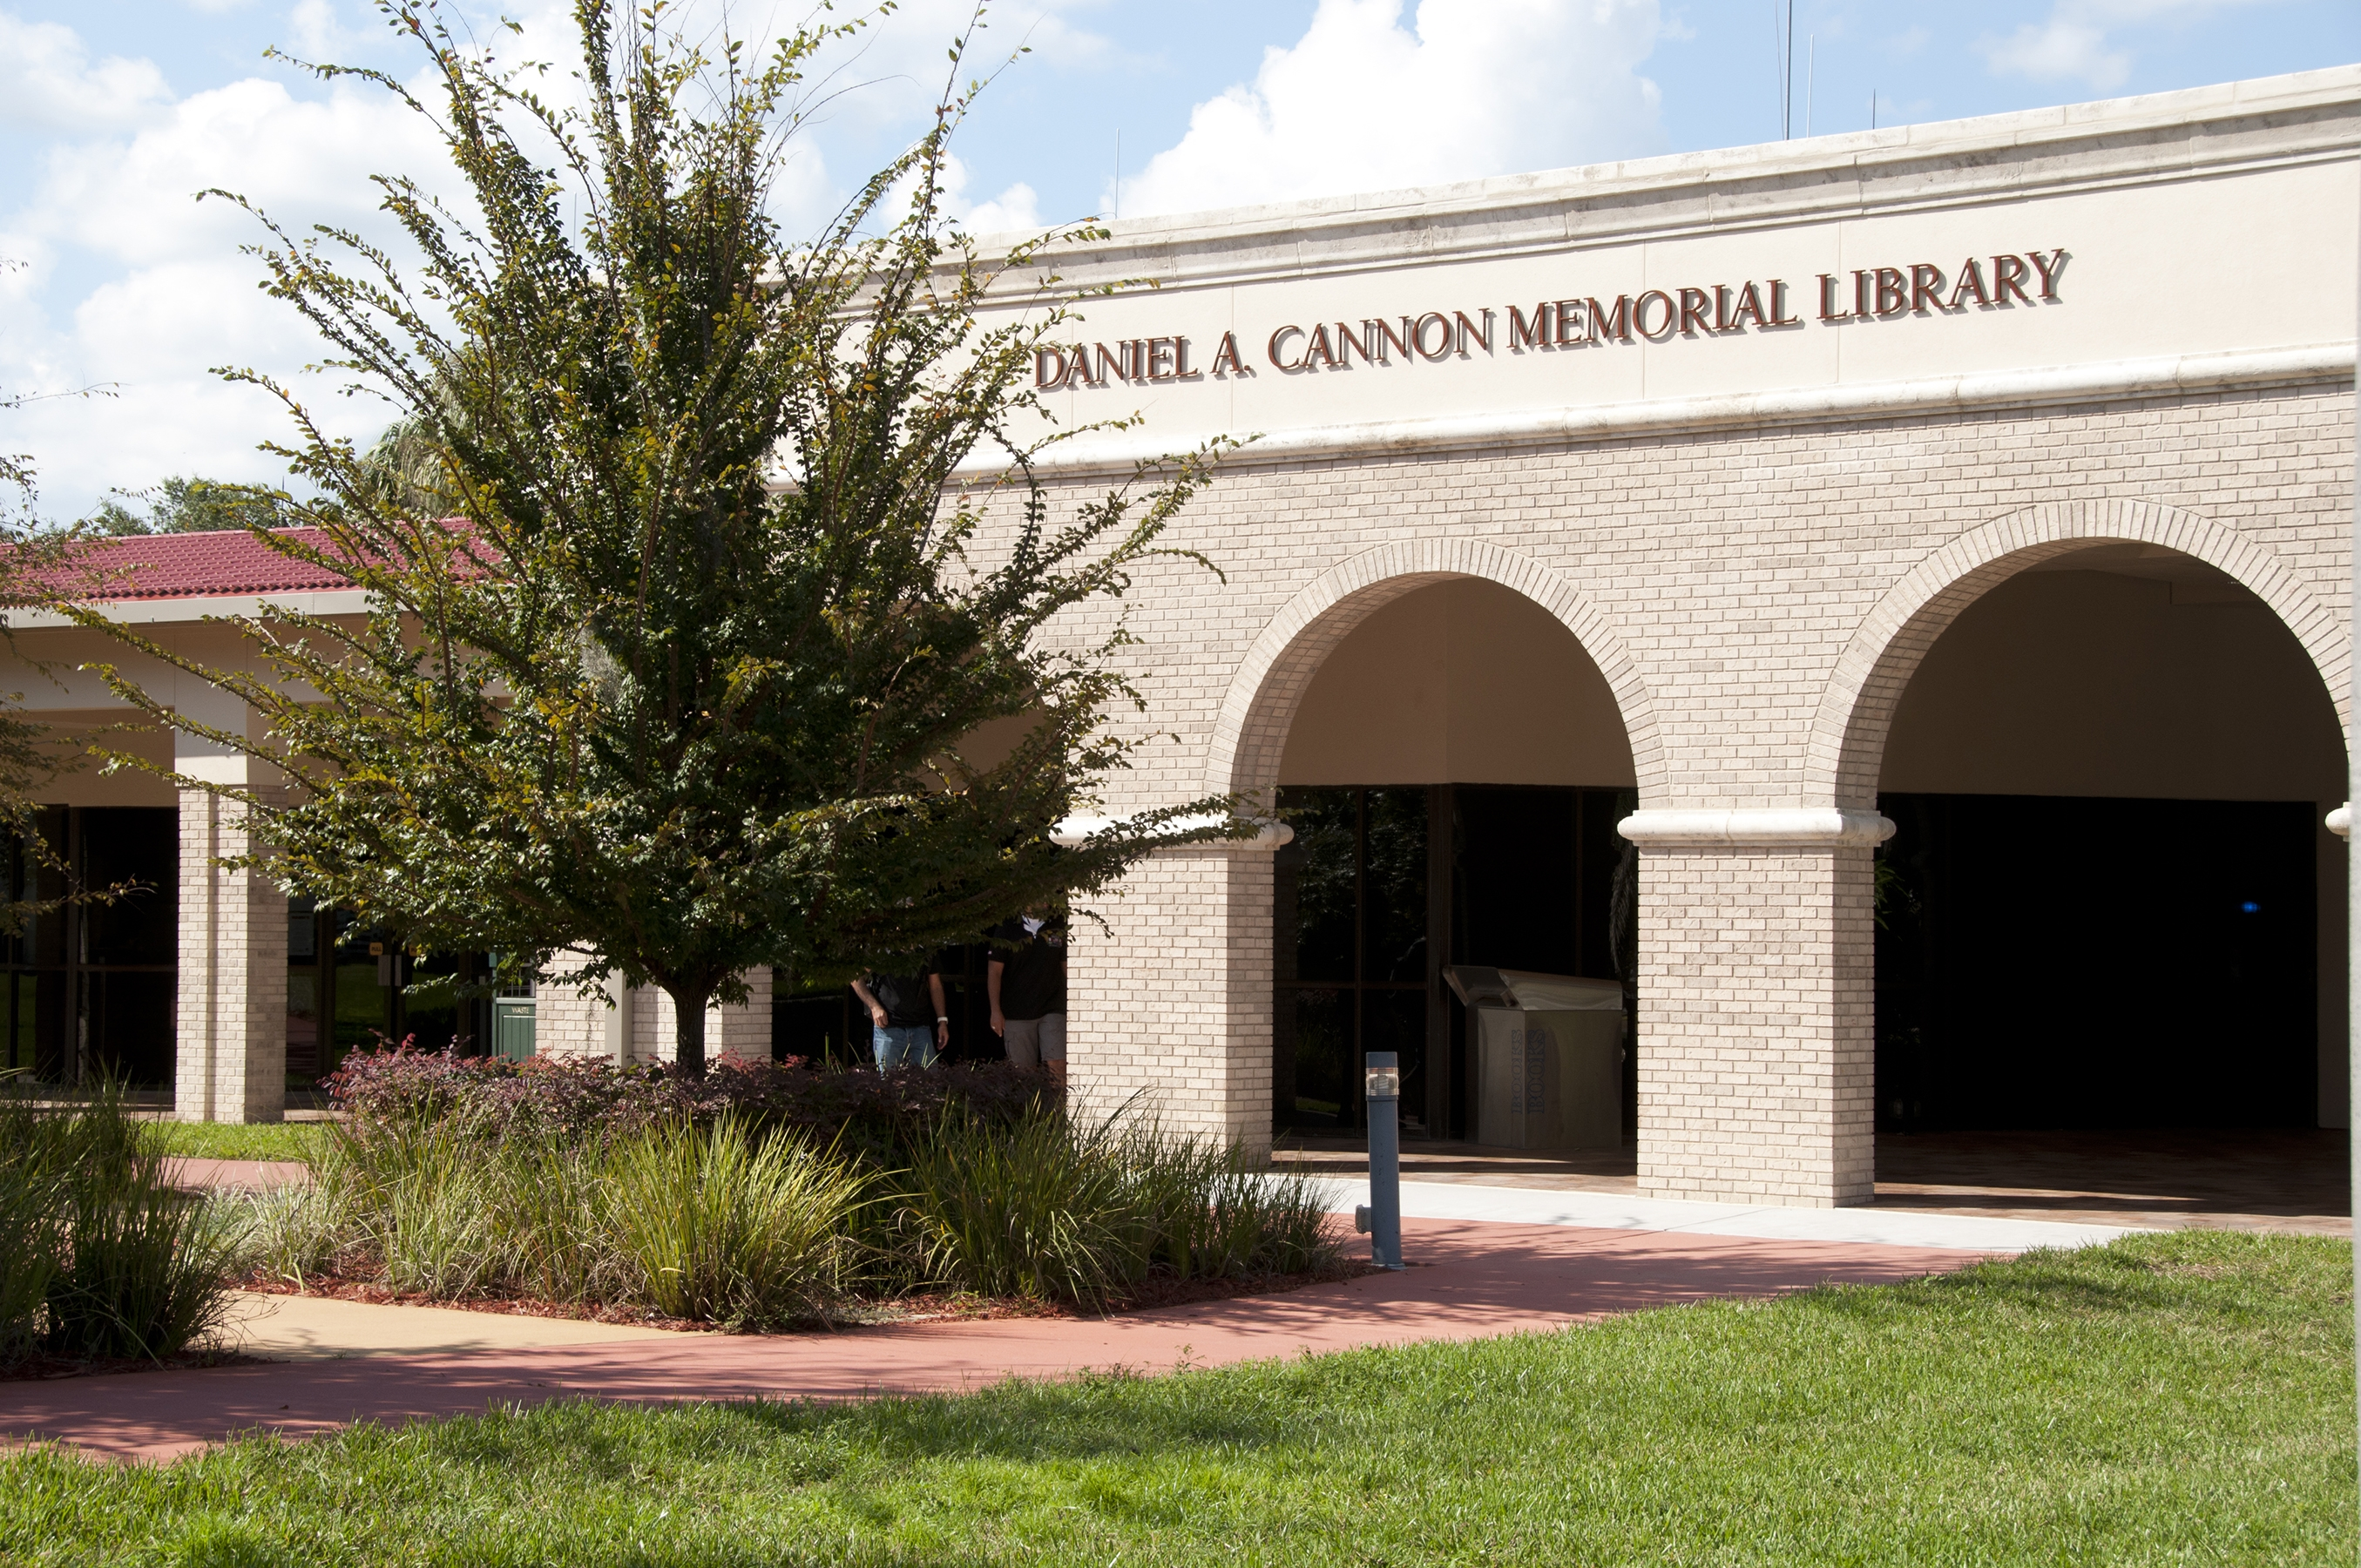 Daniel A. Cannon Memorial Library